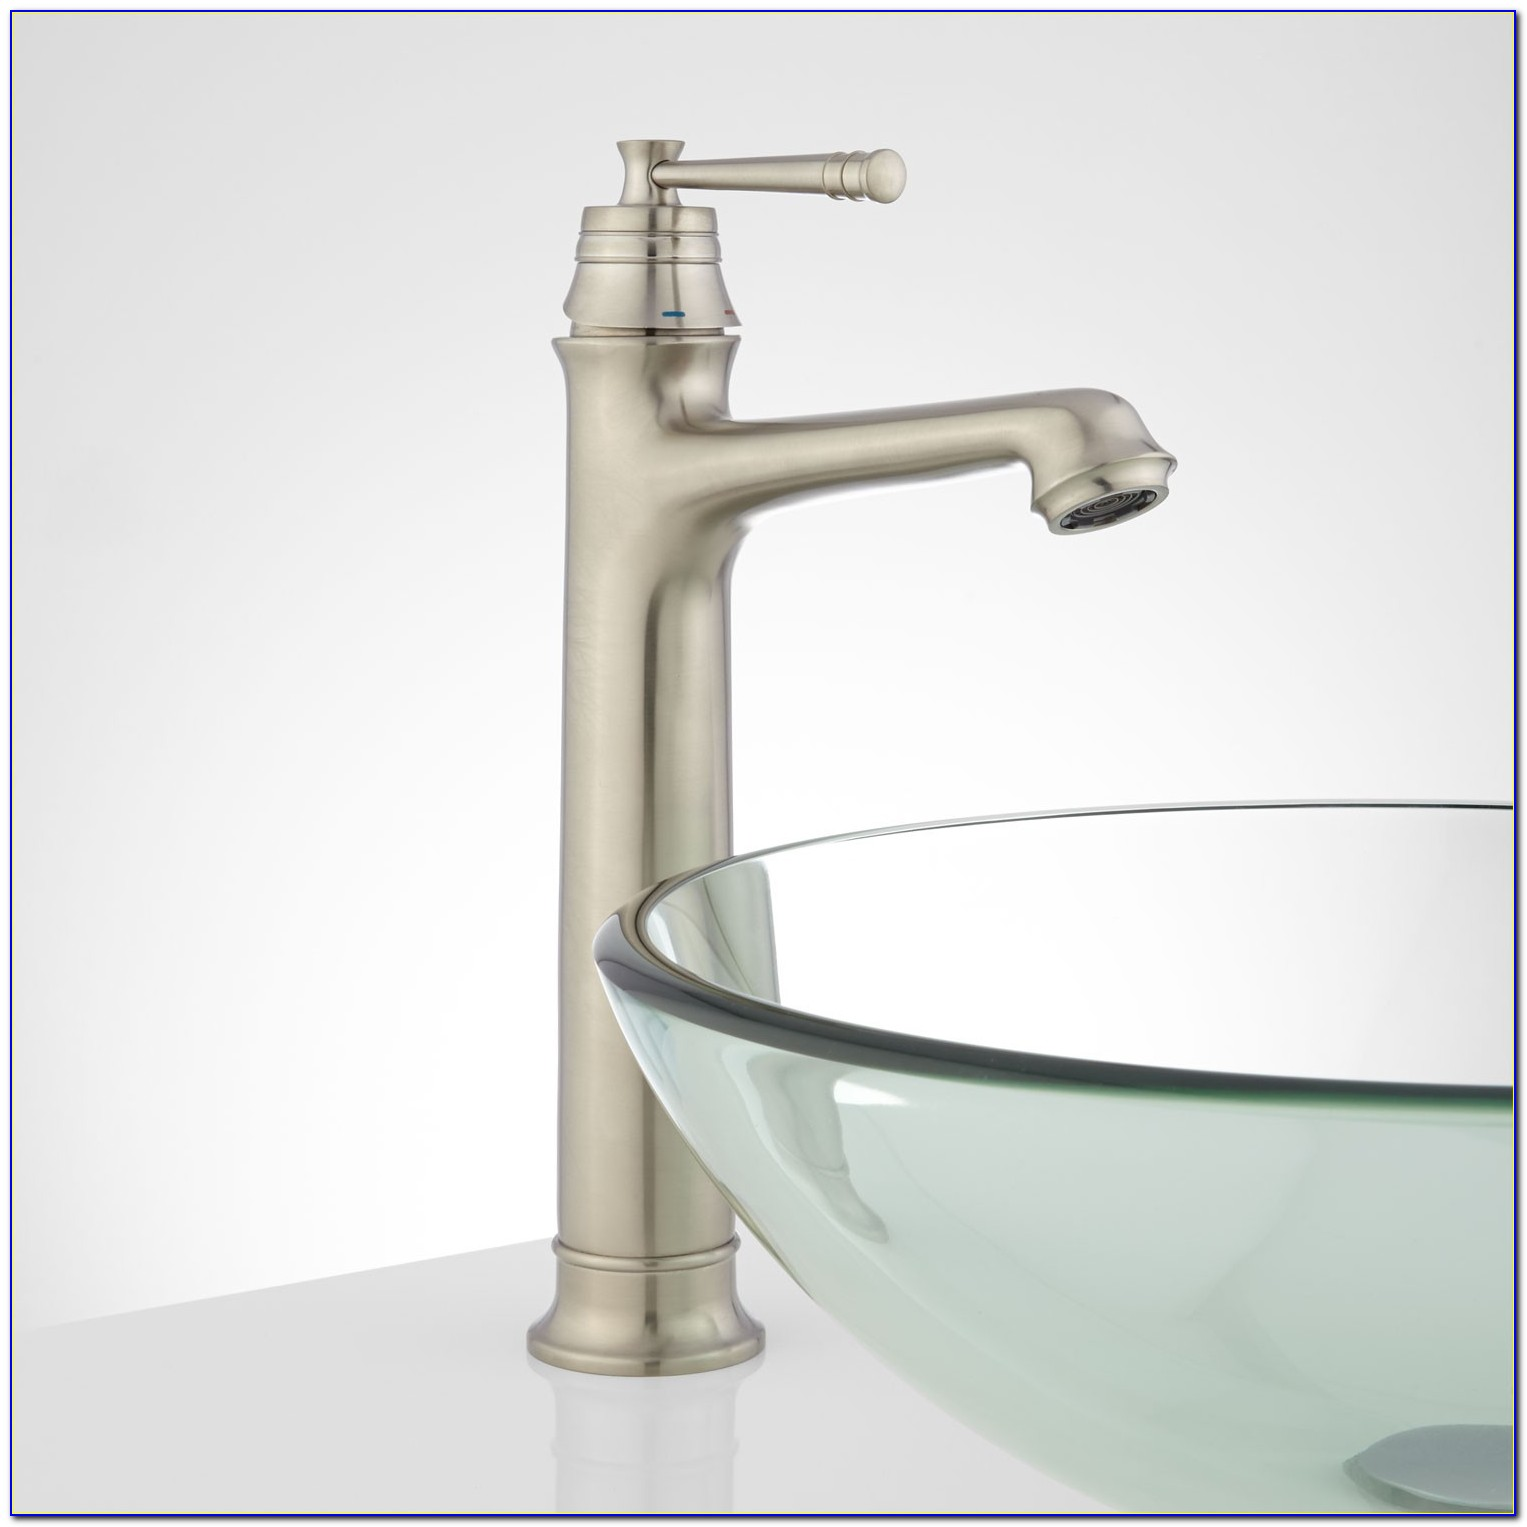 Vessel Sinks With Waterfall Faucets